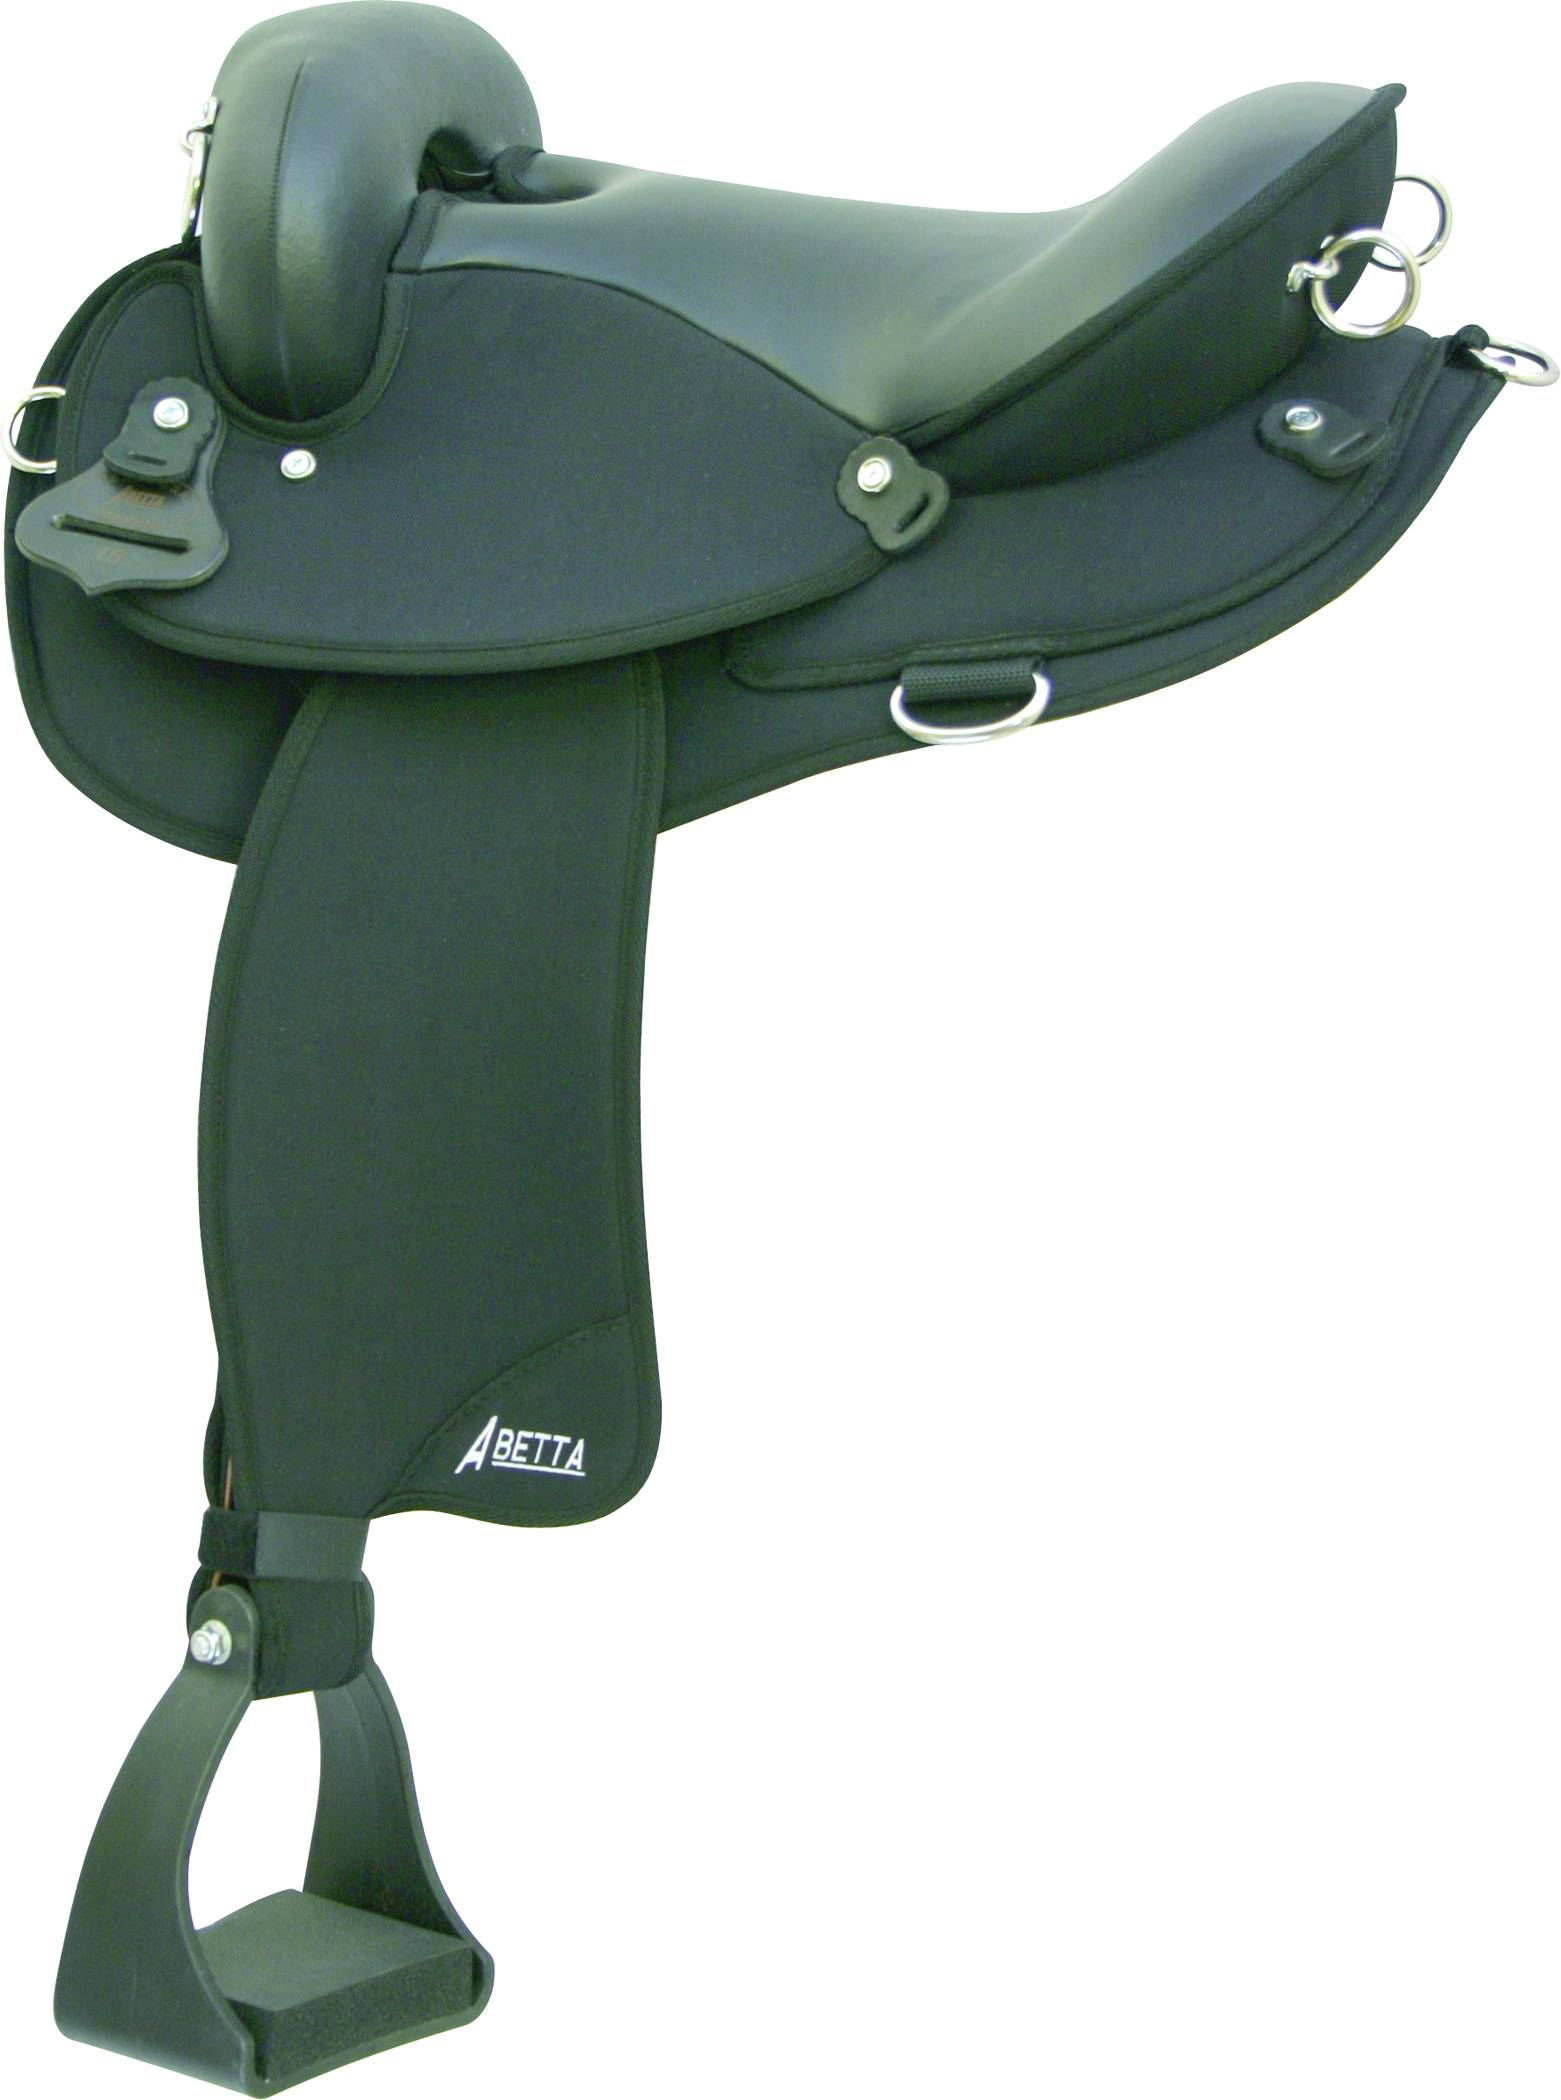 Abetta Serenity Endurance Saddle